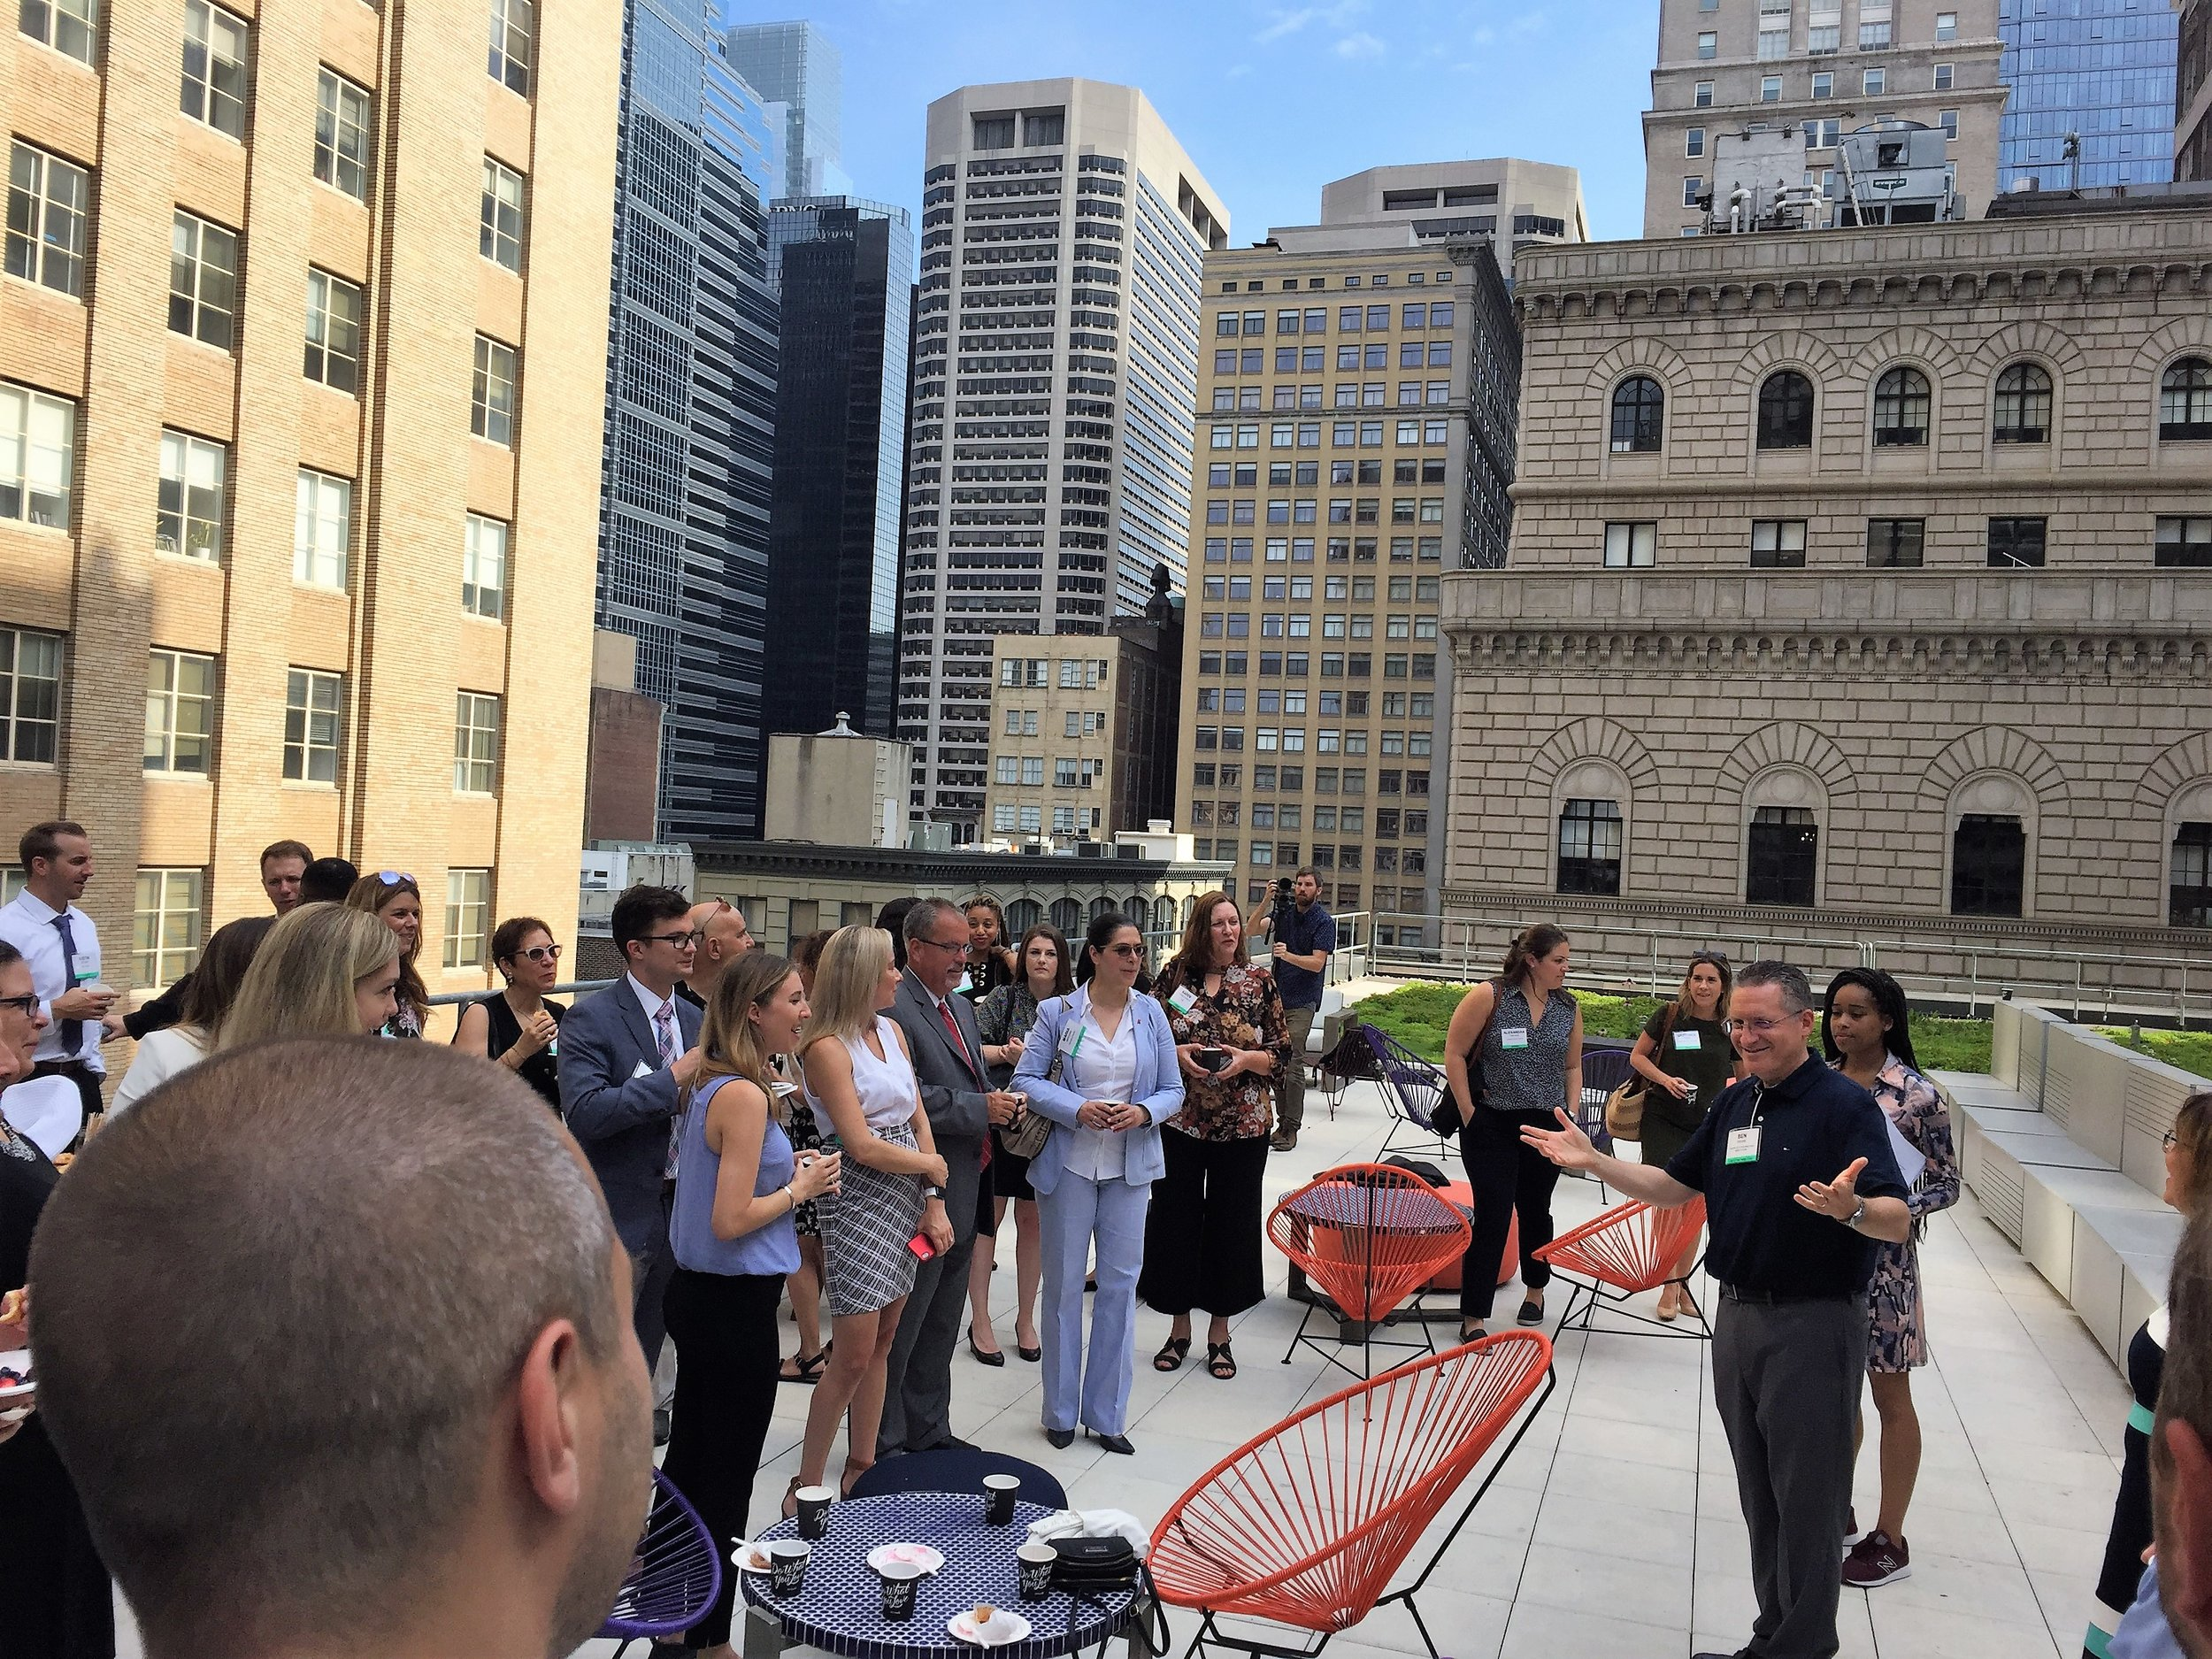 7-11-19 HHBfast WeWork Roof Deck Photo 6.jpg